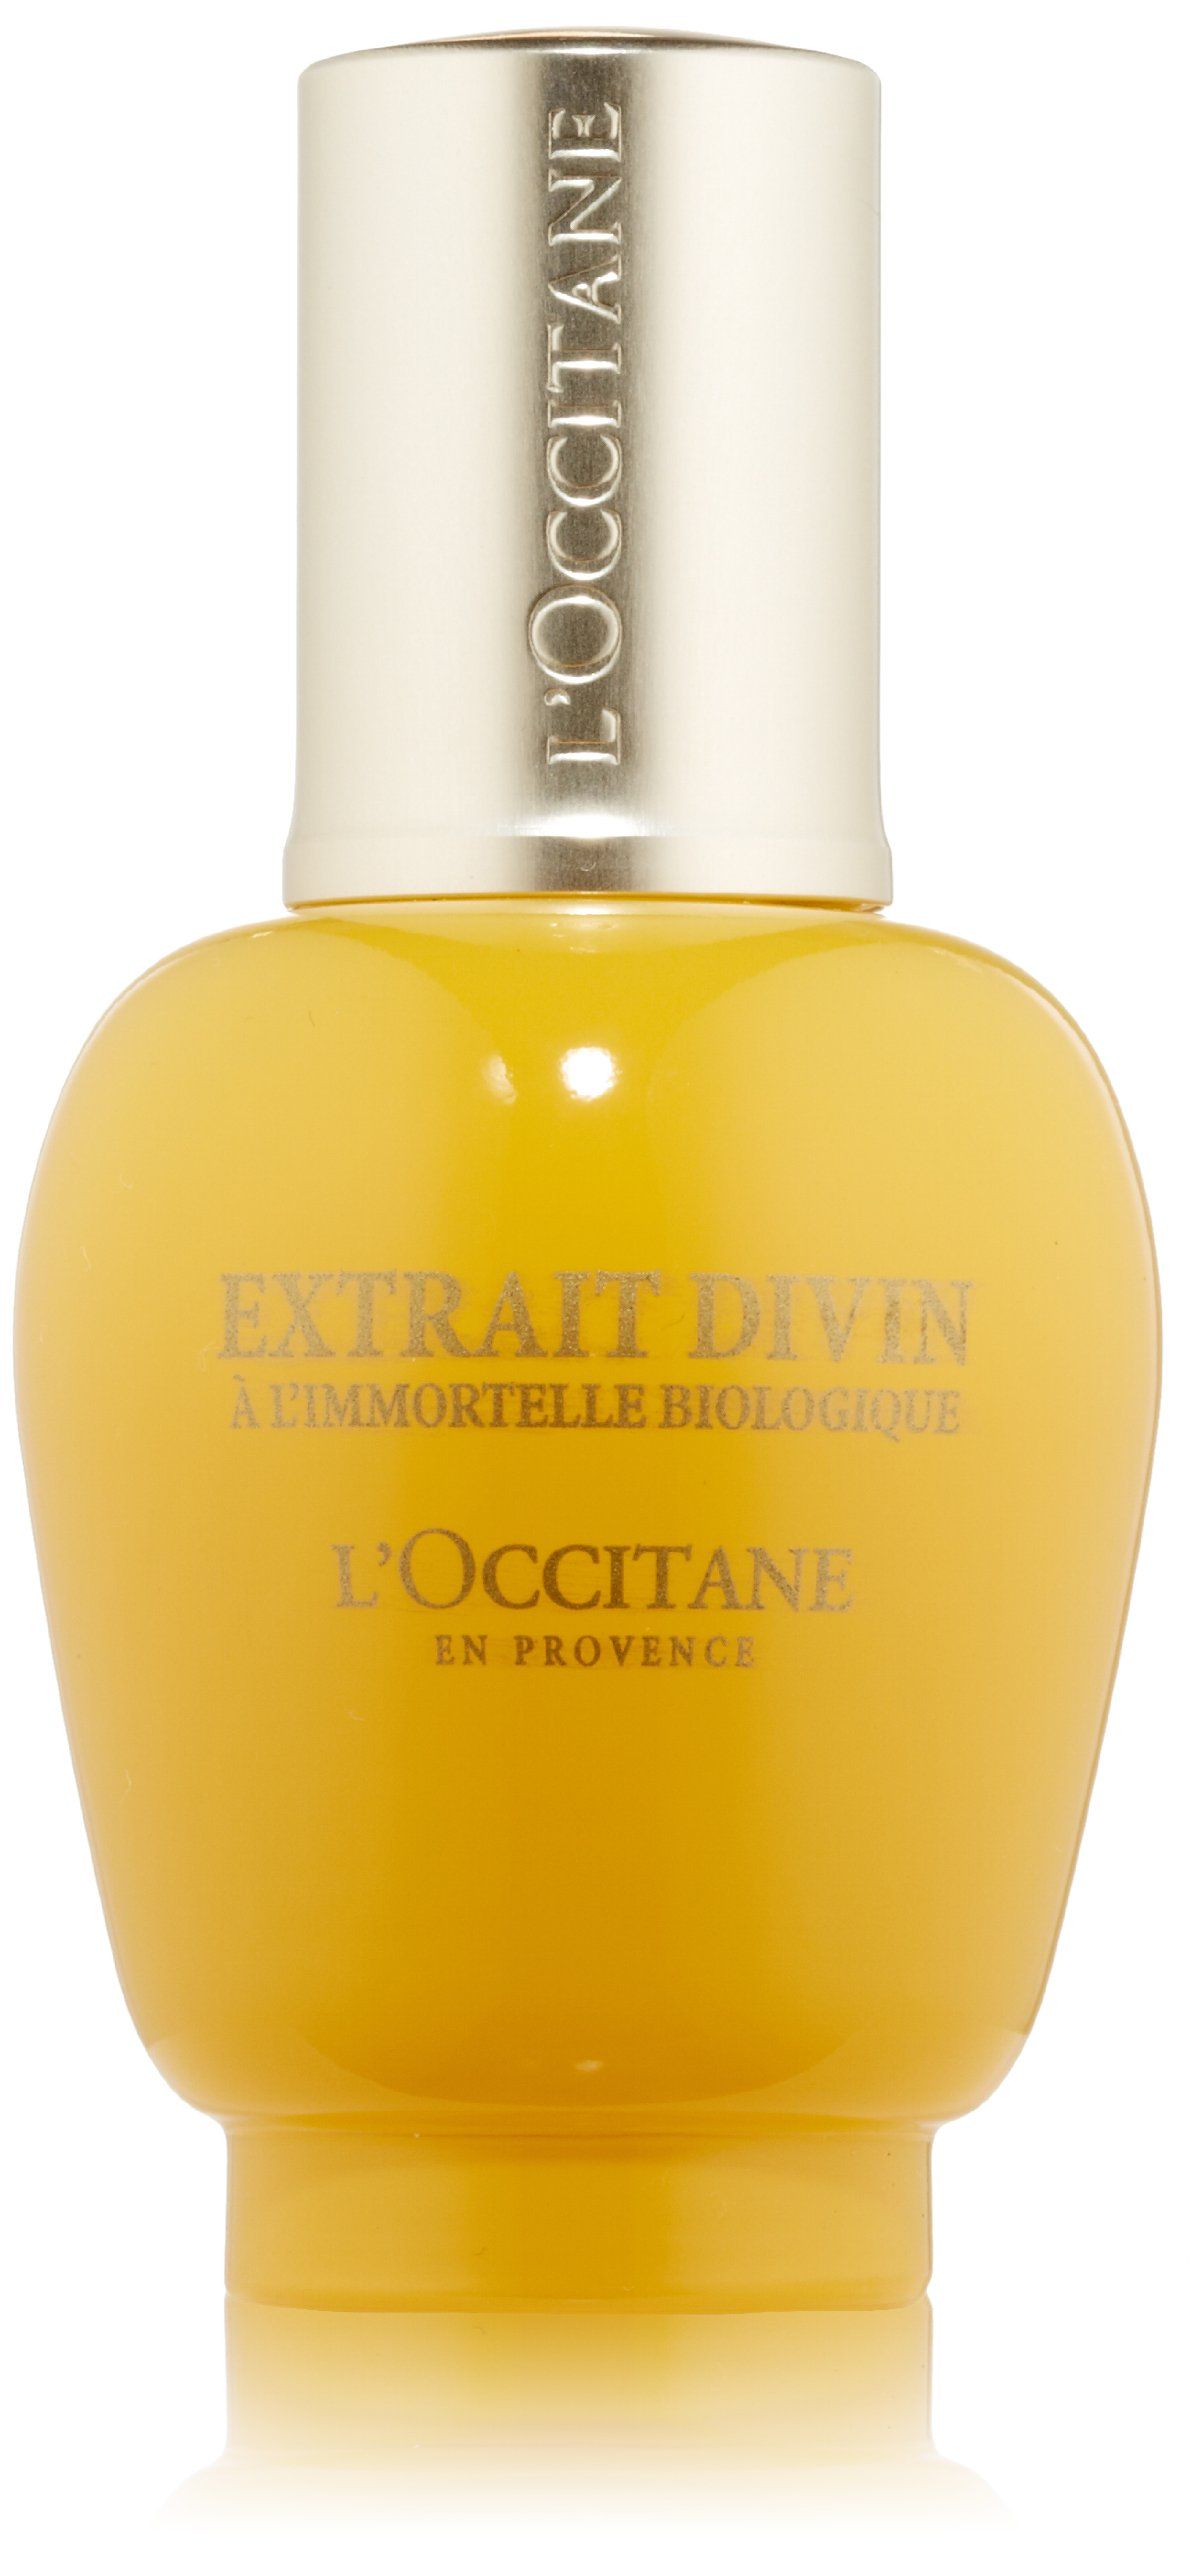 L'Occitane Anti-Aging Divine Extract/Serum for a Youthful and Radiant Glow, 1 fl. oz.